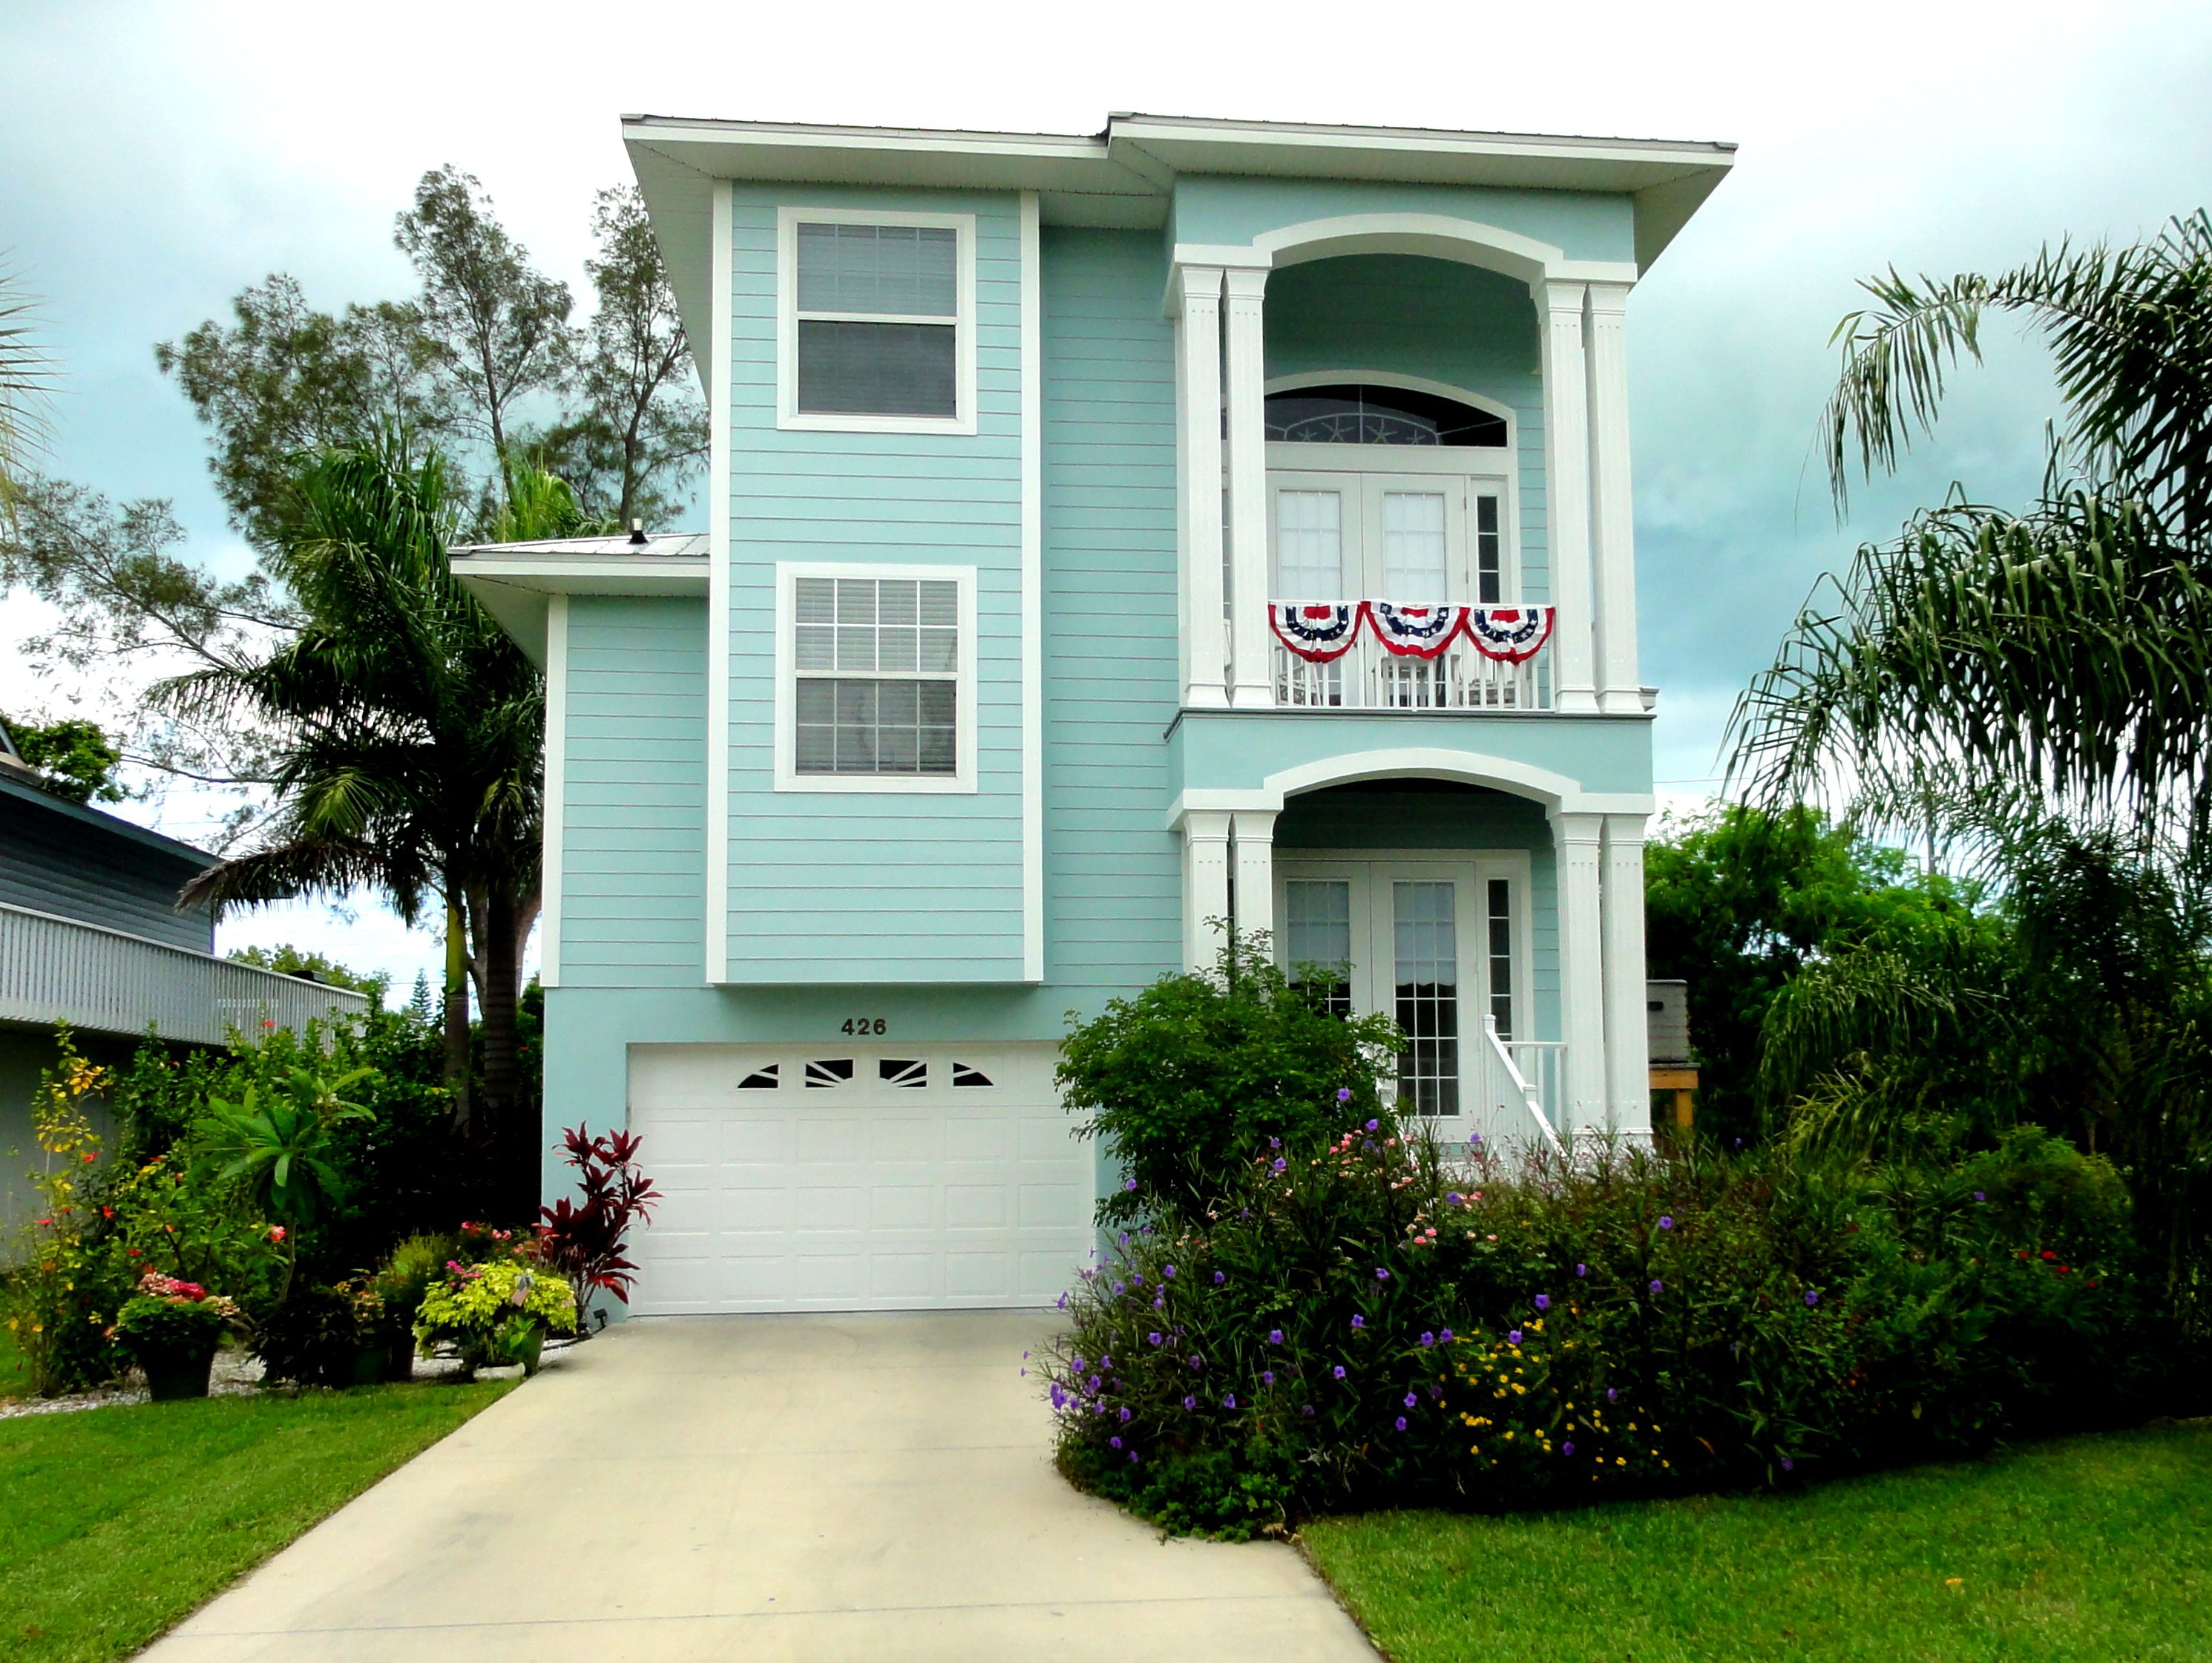 Watery By Sherwin Williams House On Magnolia On Anna Maria Island